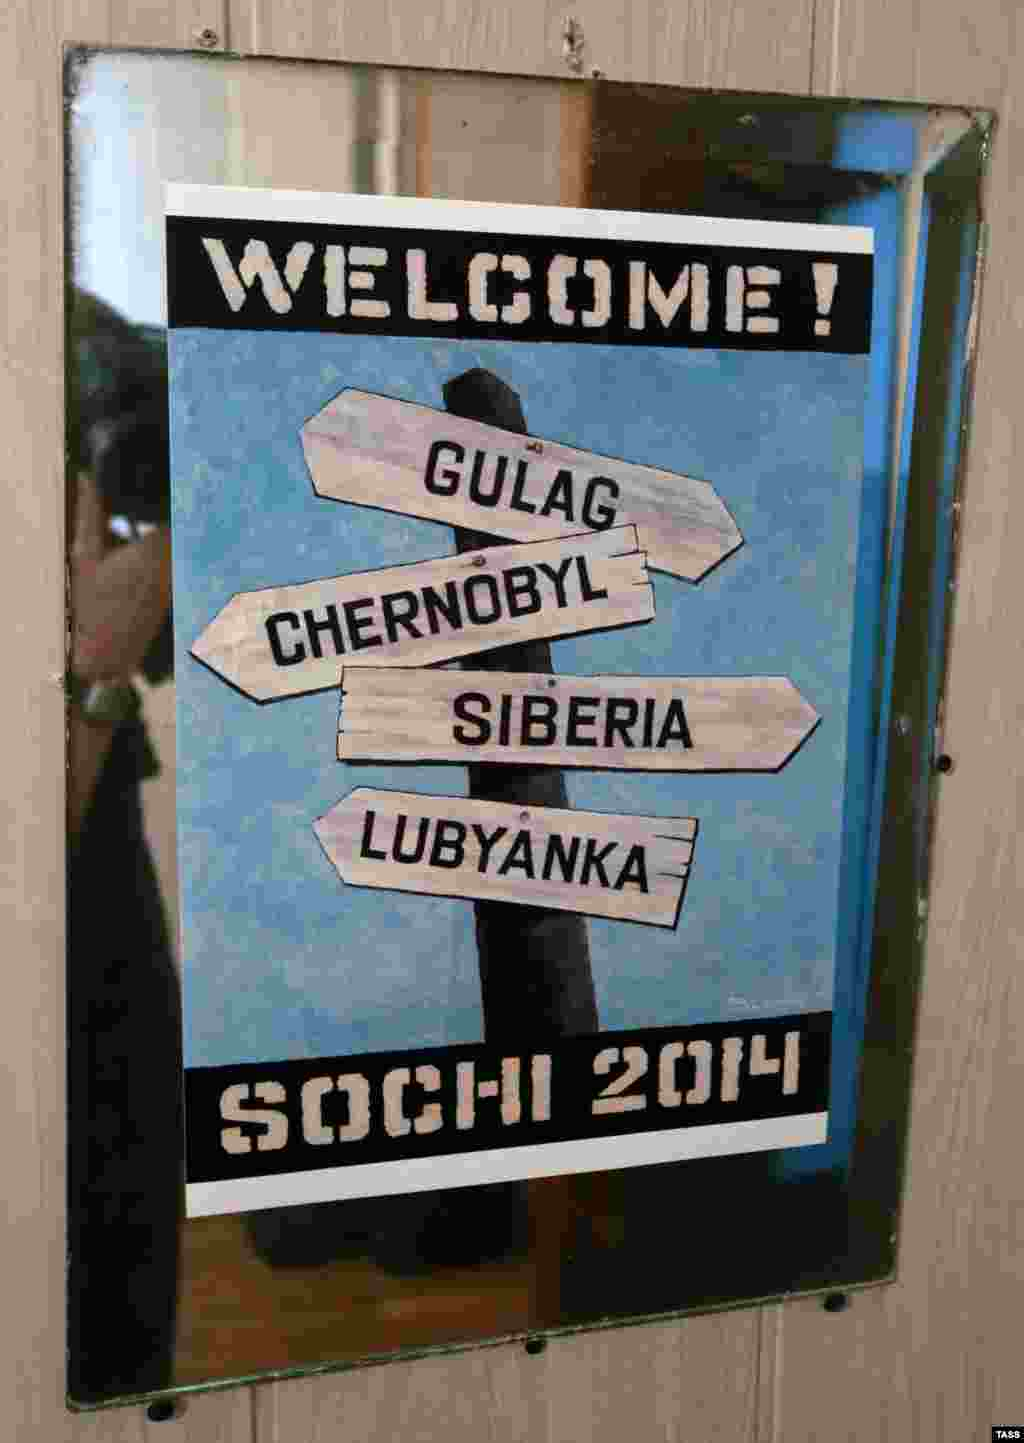 A poster showing road signs directing to Gulag, Chornobyl, Sibir and Lubyanka, the location of Federal Security Service (FSB) headquarters, at Vasily Slonov's Welcome! Sochi-2014 exhibition dedicated to the 22nd Winter Olympic Games, Perm.